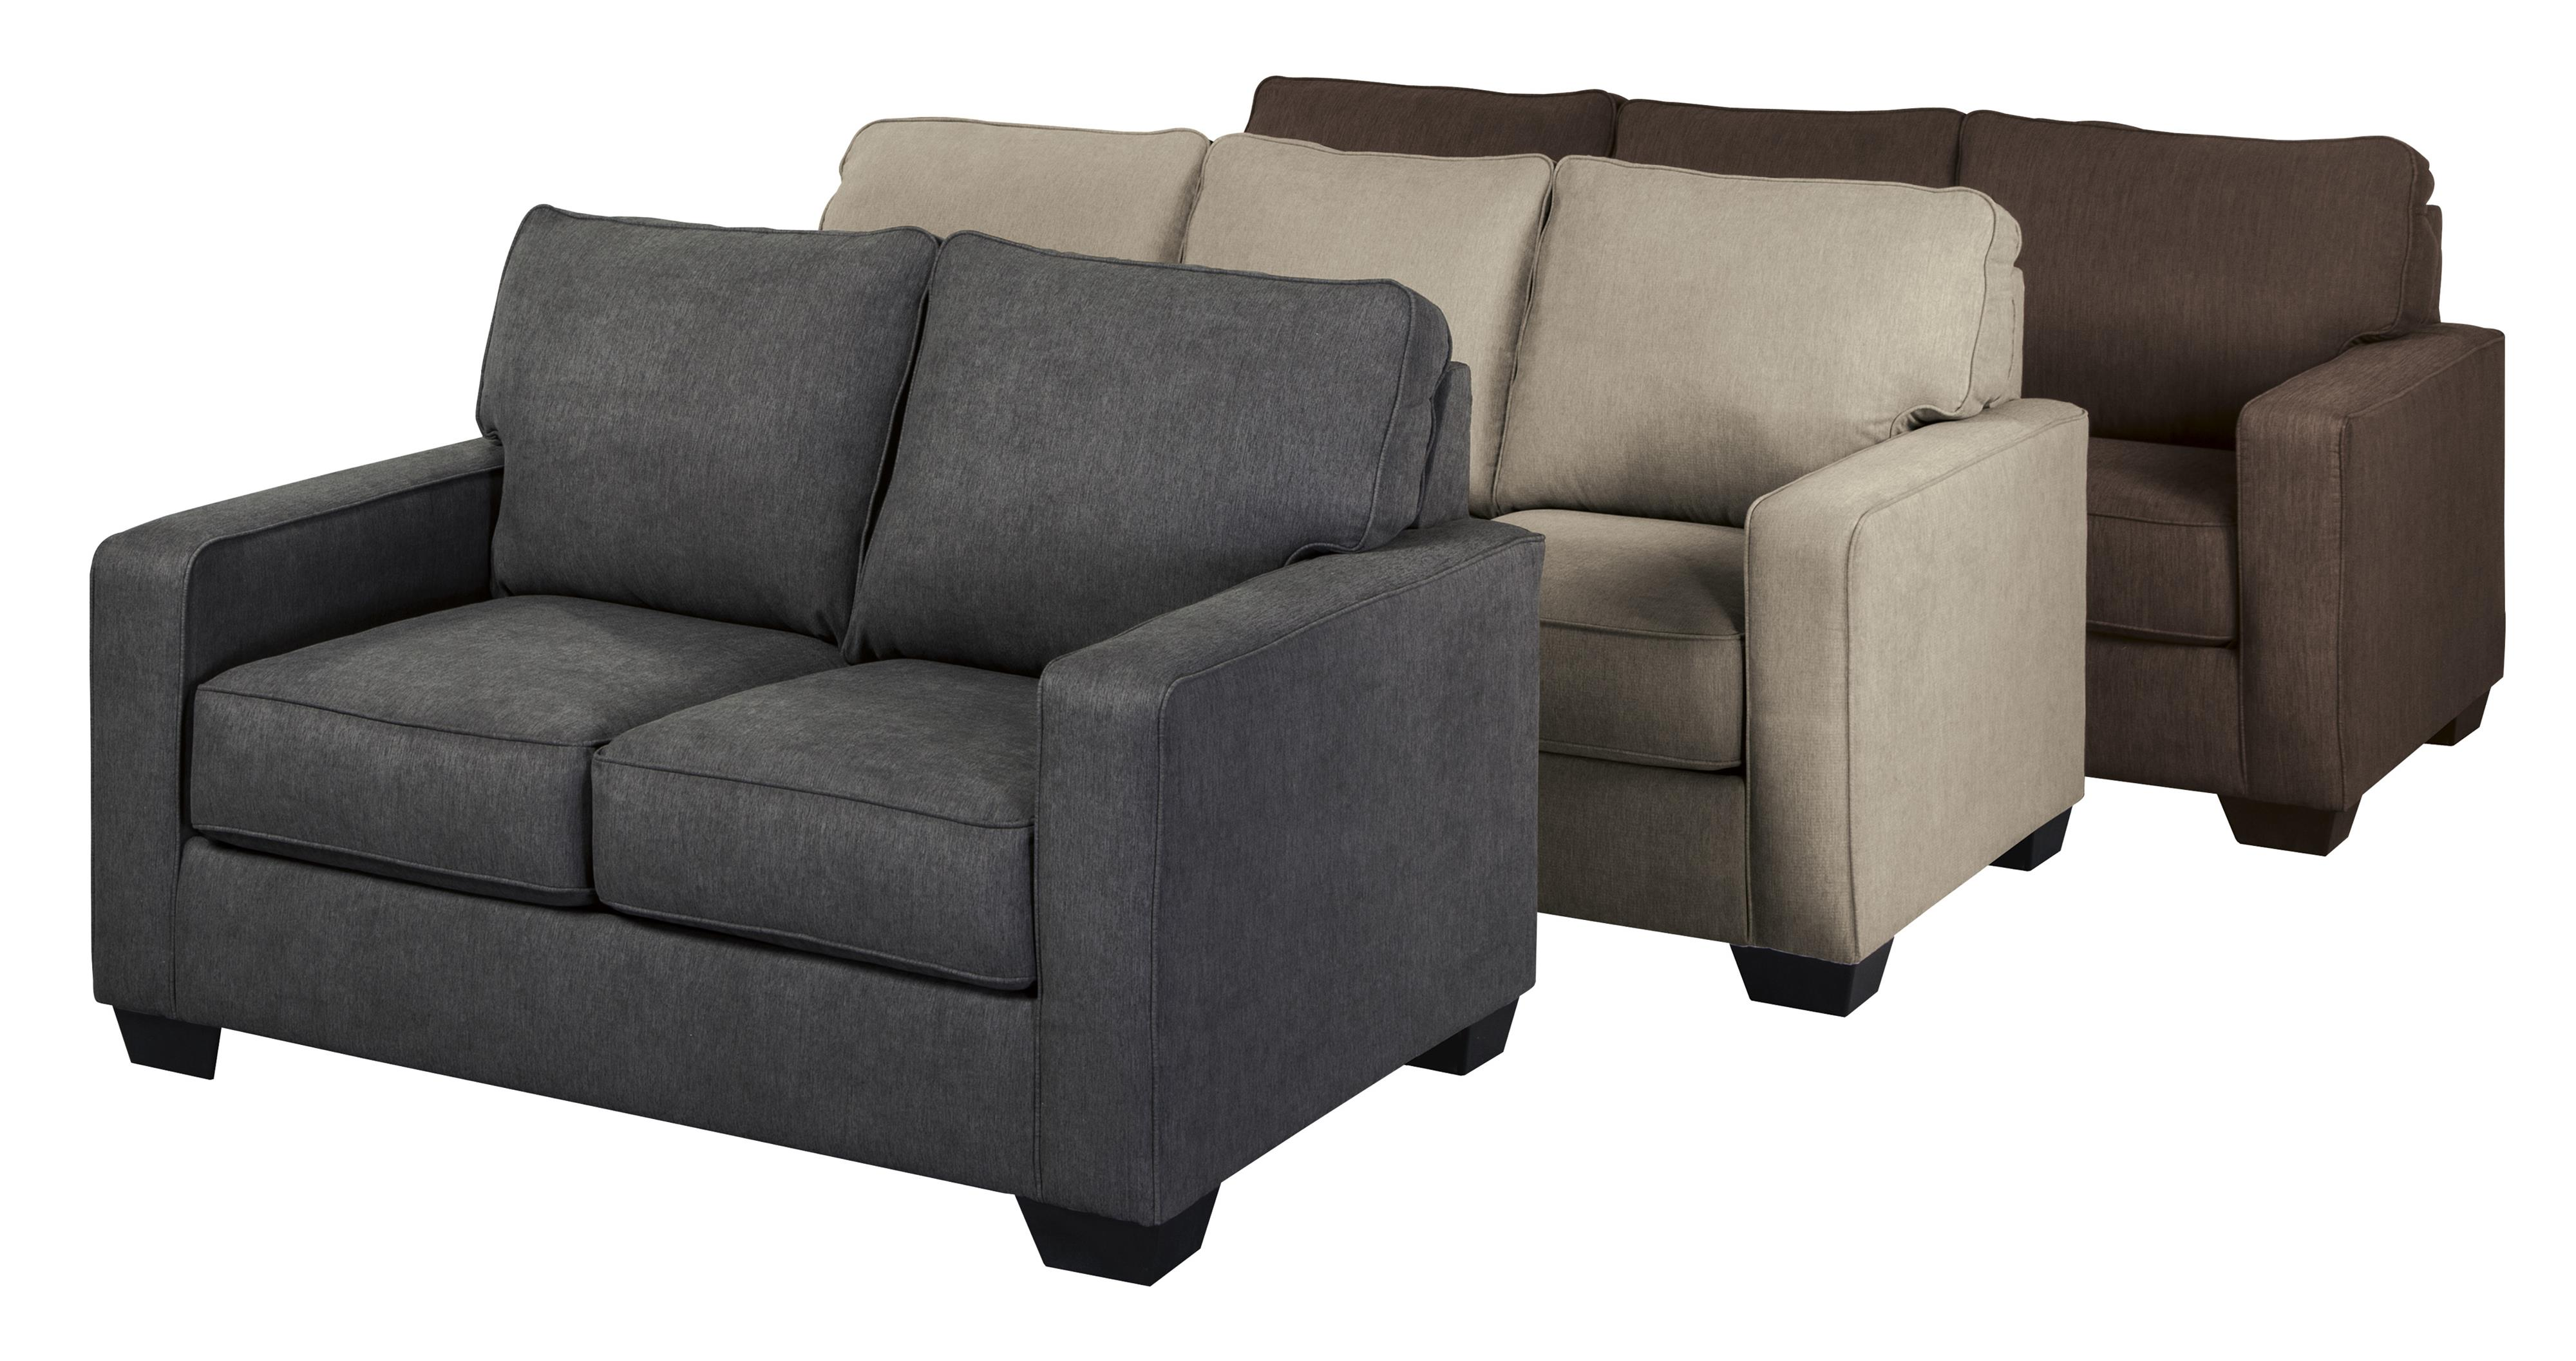 Twin Sofa Sleeper With Memory Foam Mattress By Signature